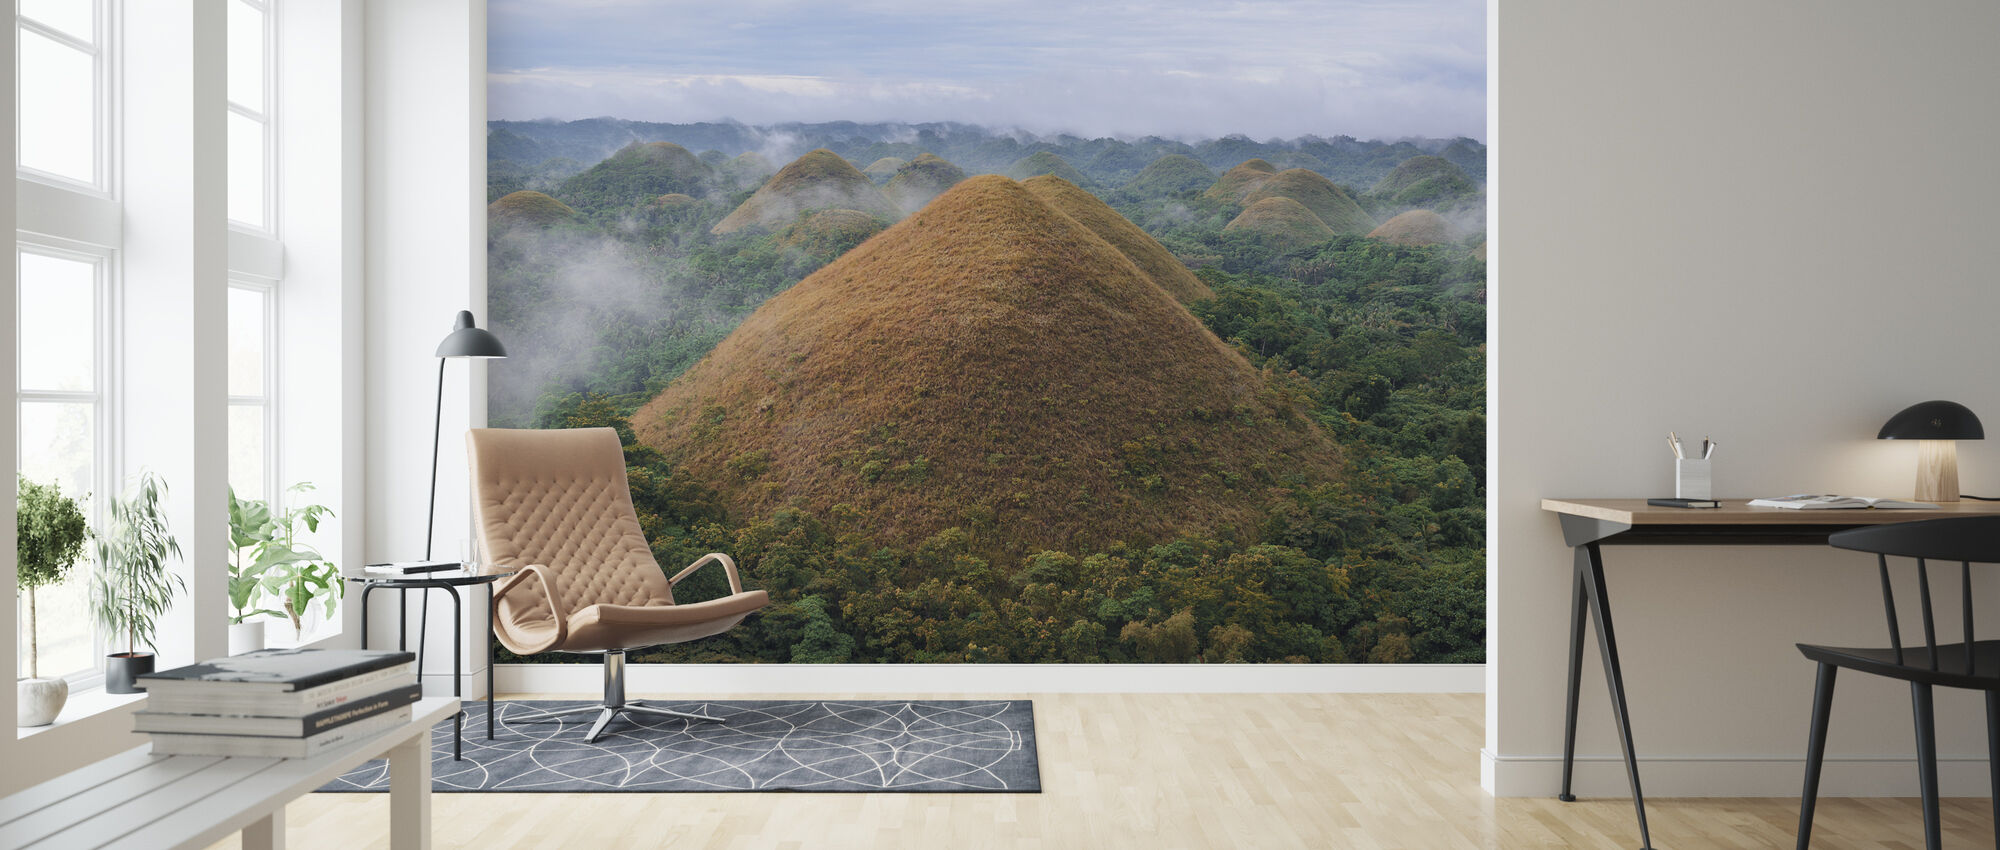 Chocolate Hills - Wallpaper - Living Room